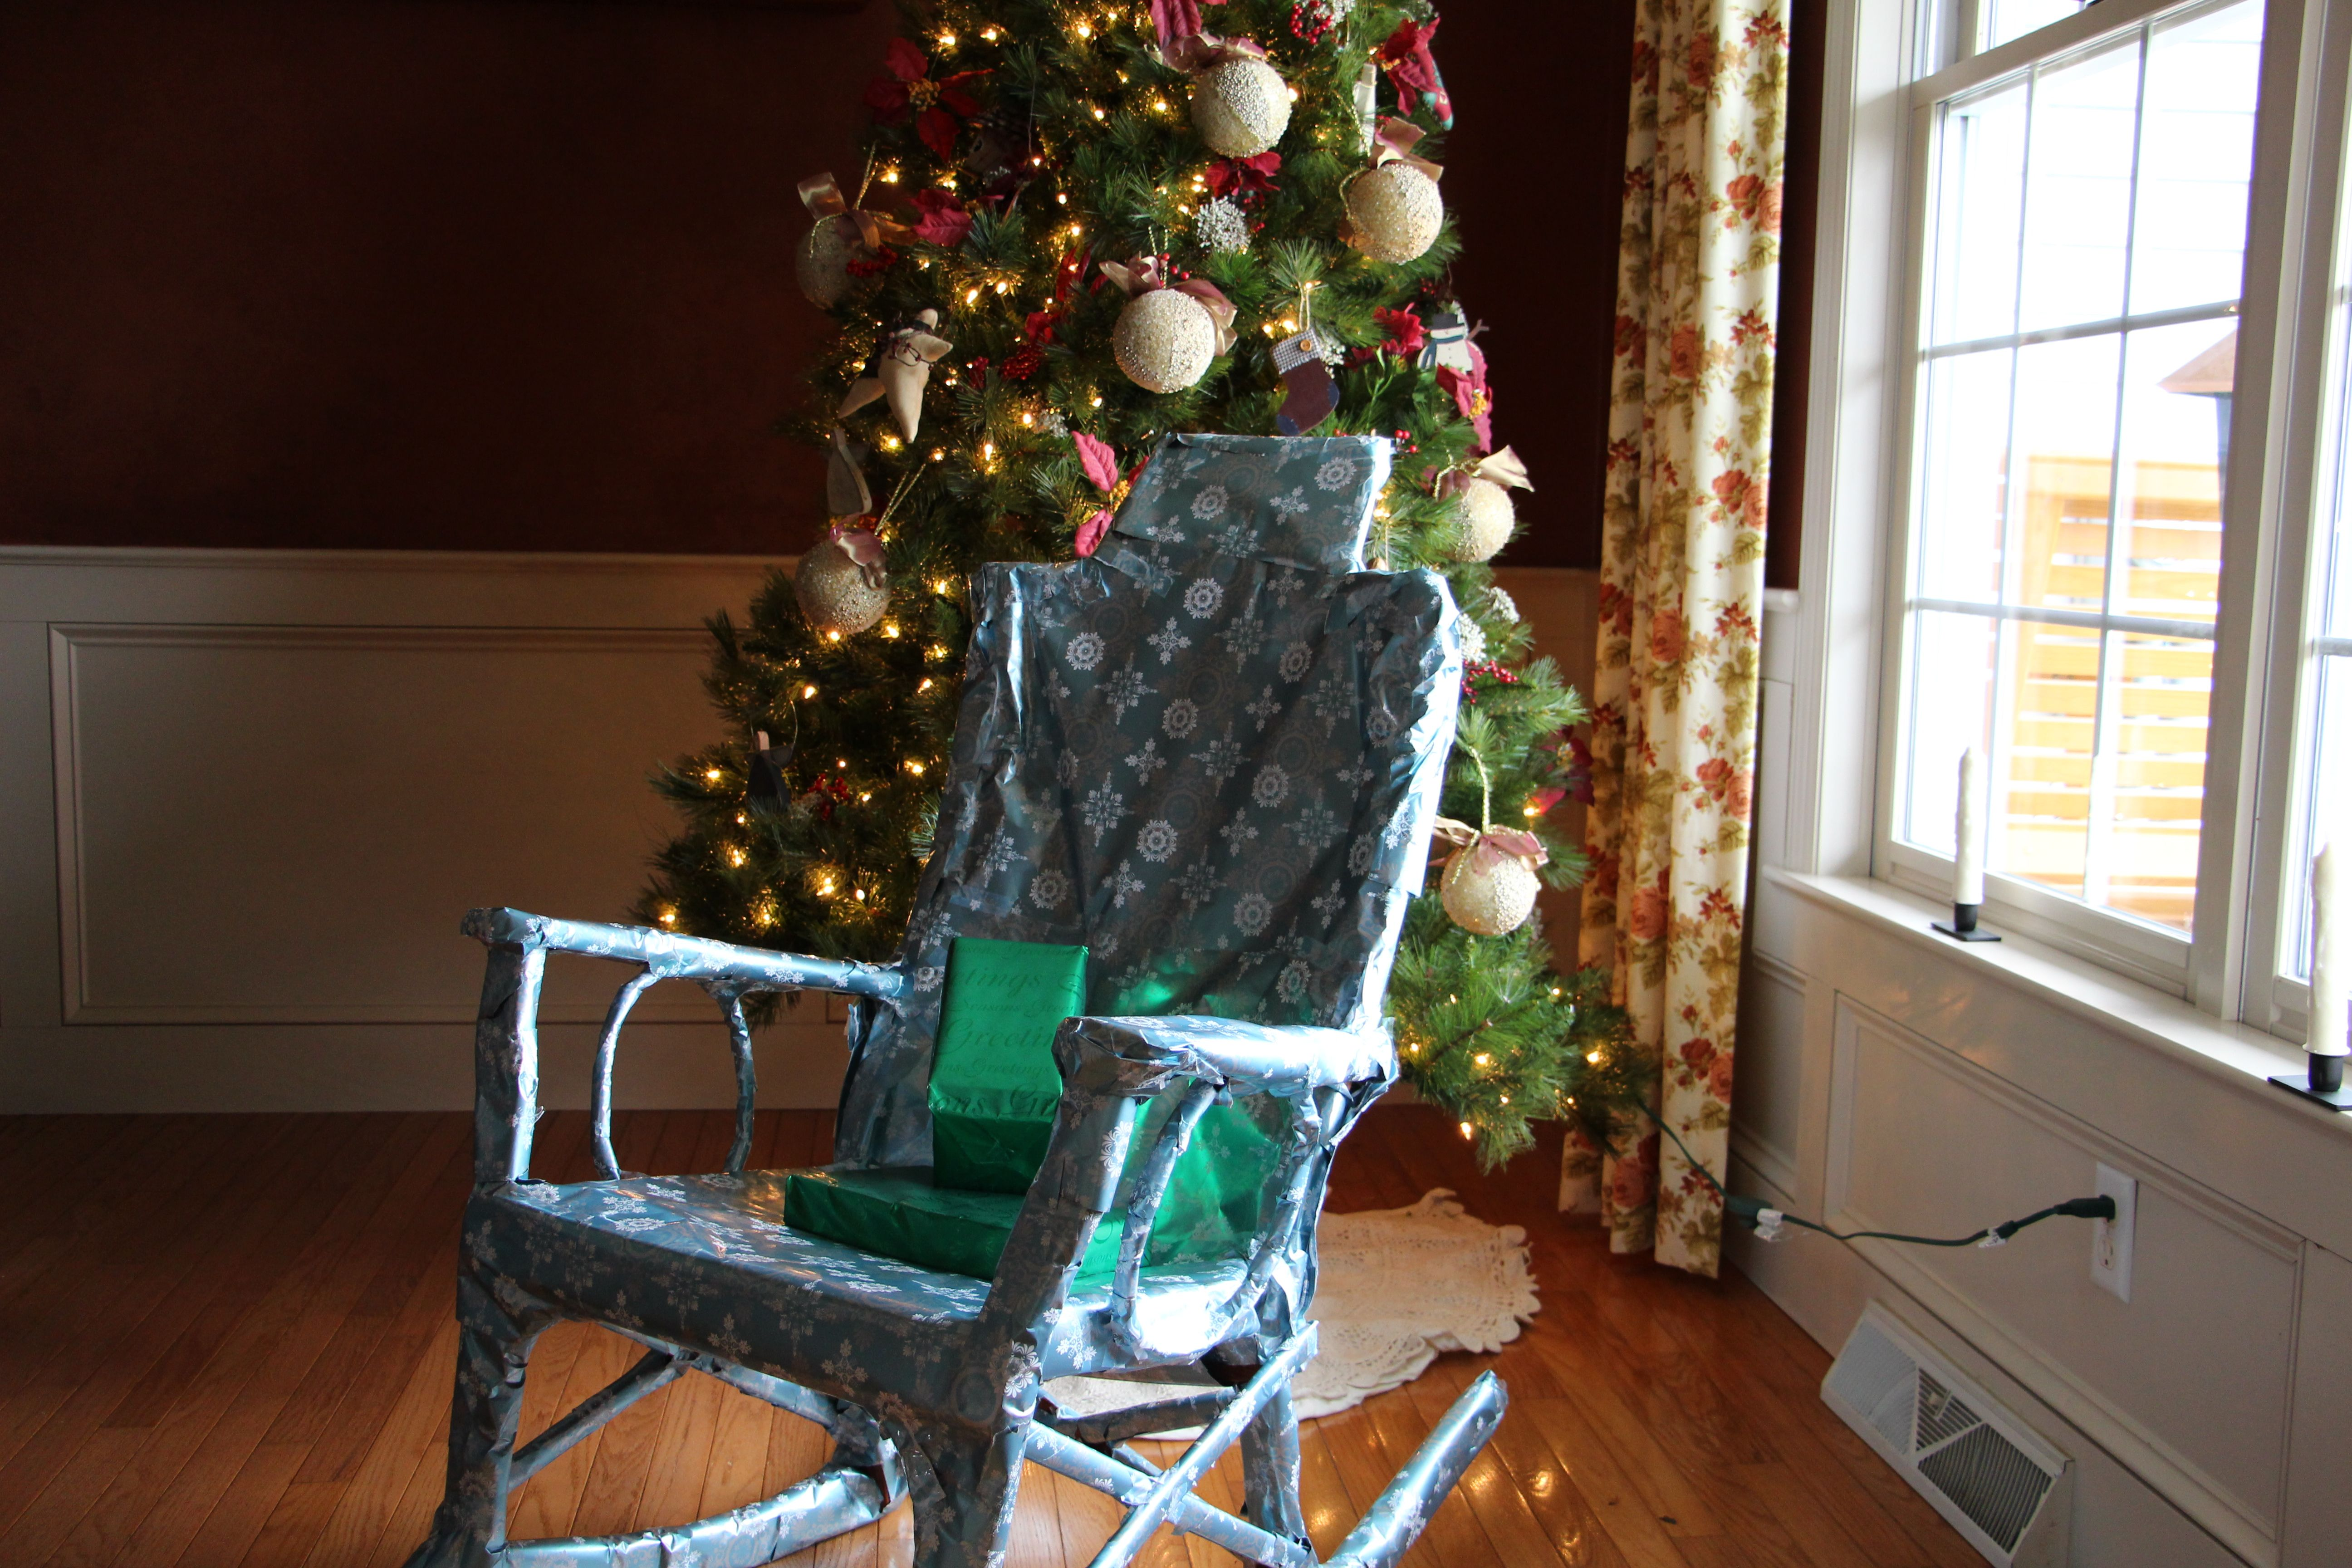 How To Gift Wrap Your Furniture Peaceful Valley Furniture Blog Furniture Blog Holiday Decor Gift Wrapping